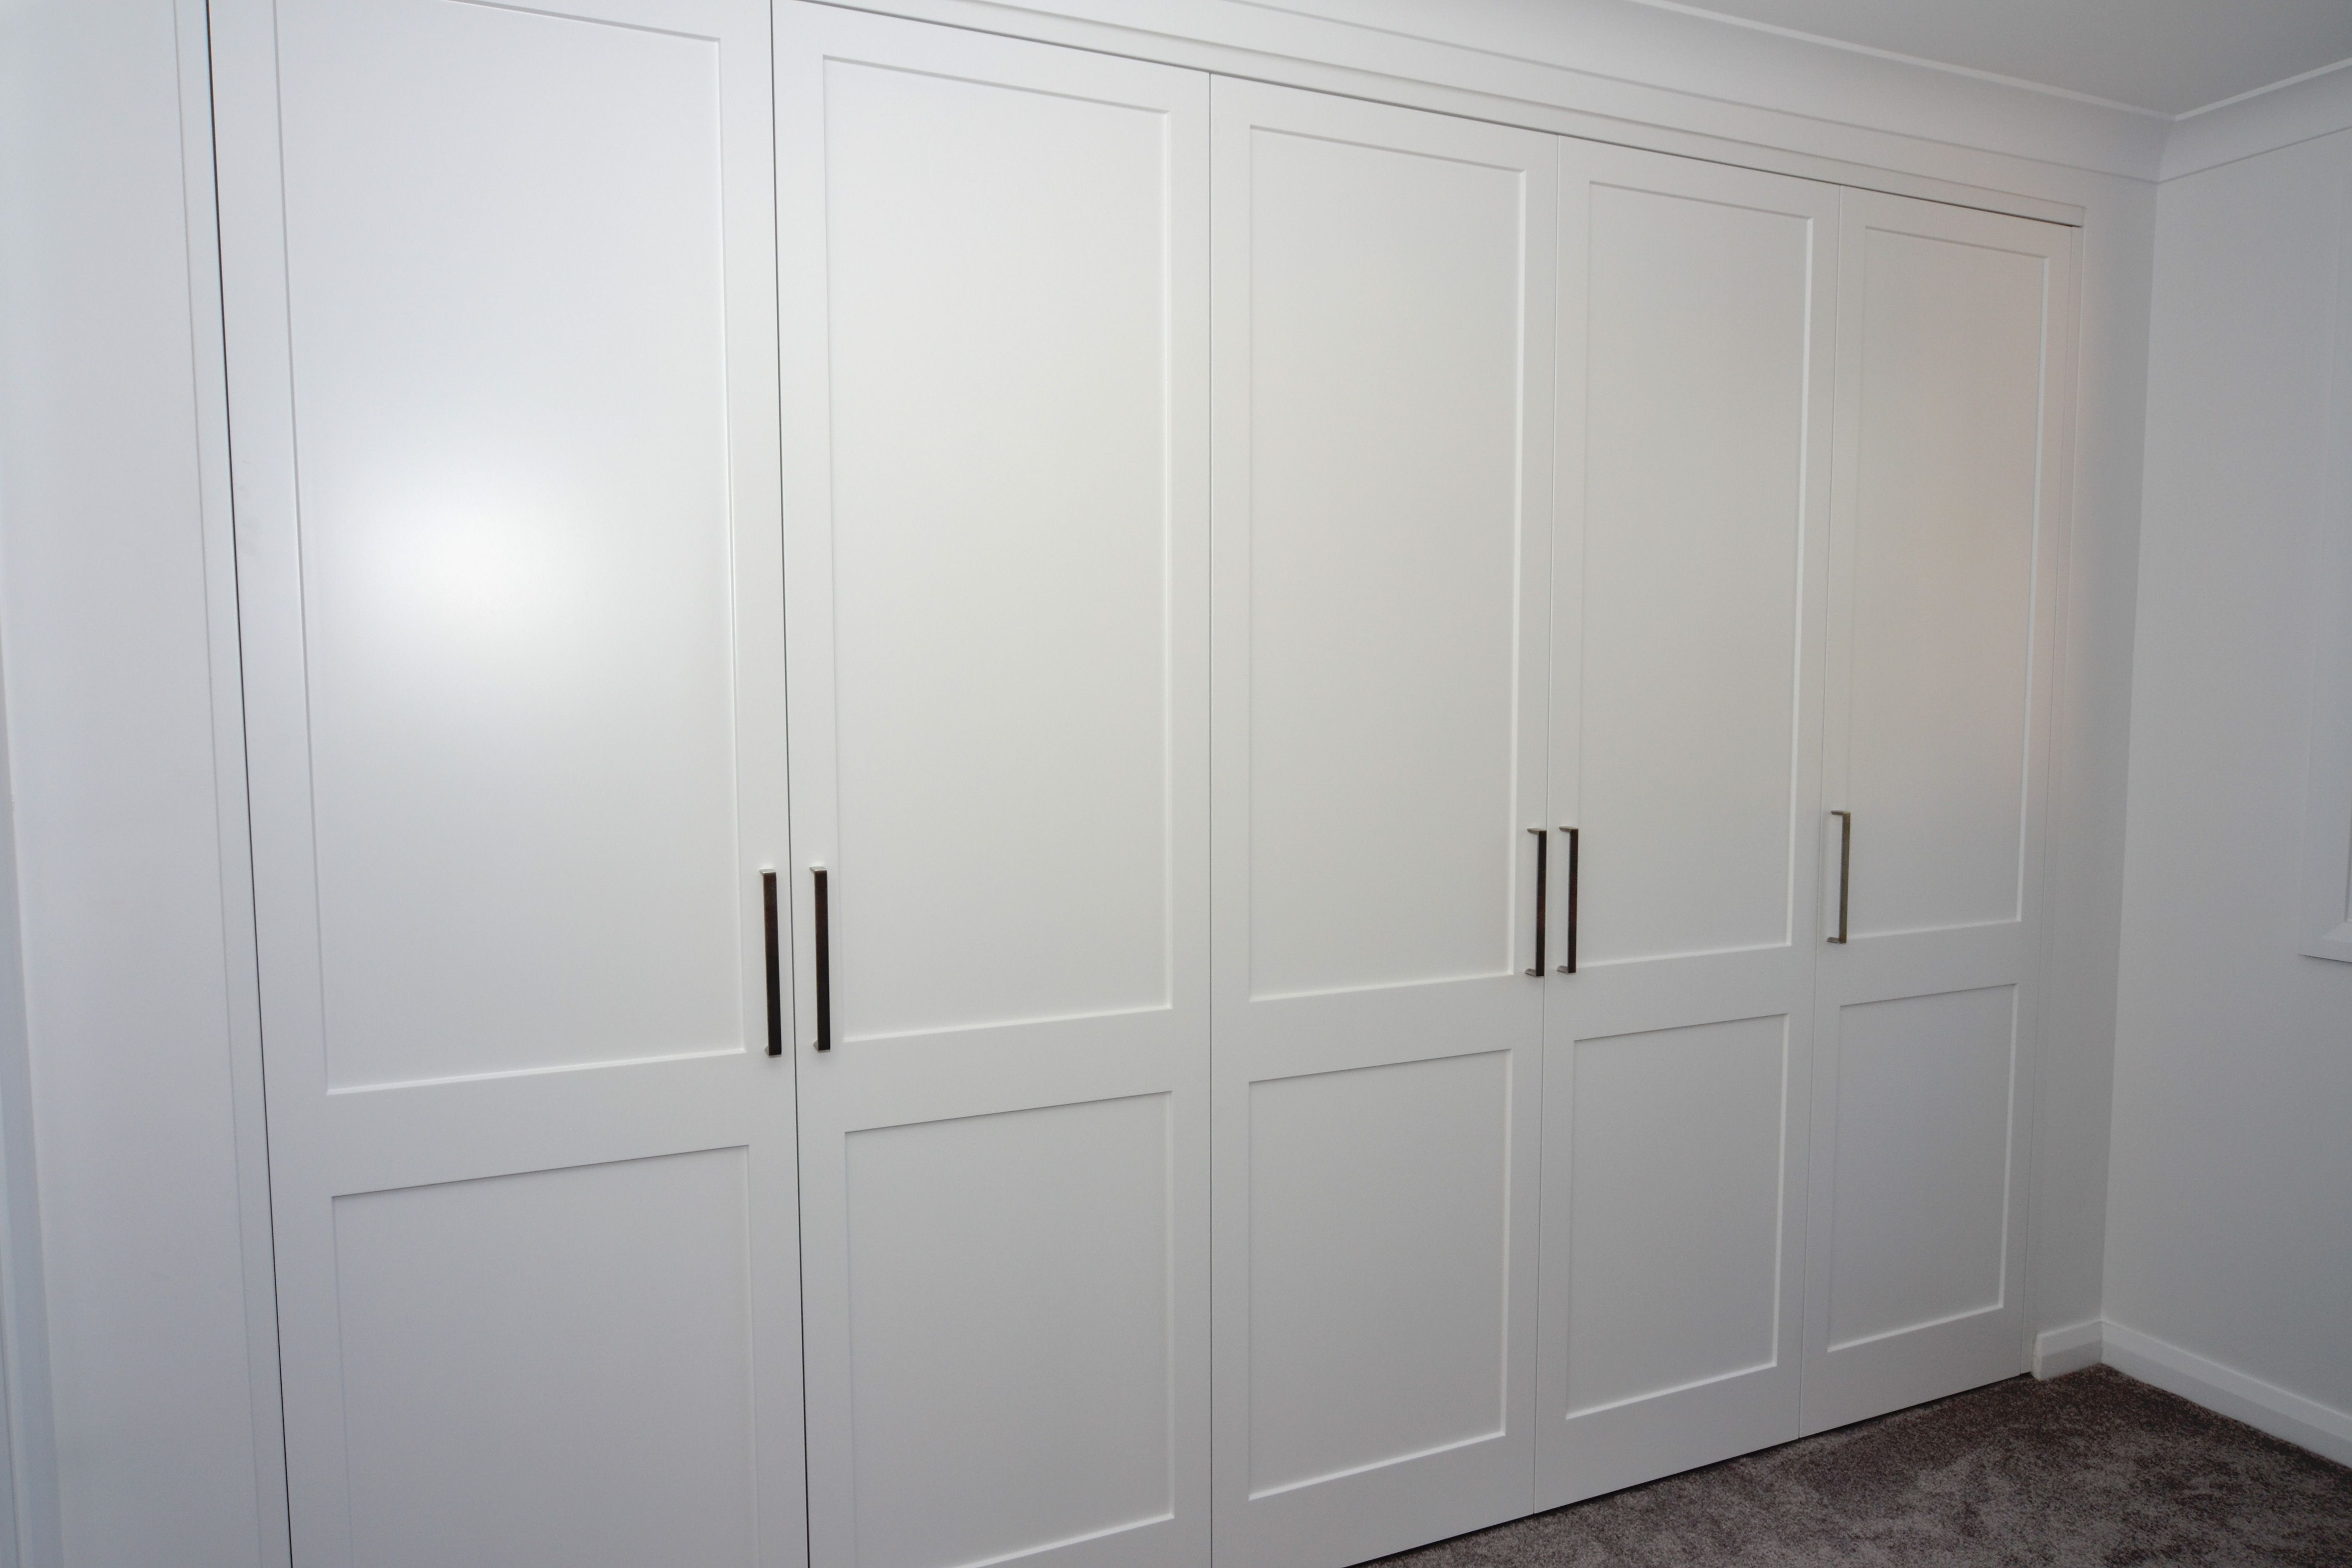 Solid Wood Built In Wardrobes Throughout Well Known Luxurious White Solid Hardwood Built In Wardrobe With Simple (View 10 of 15)